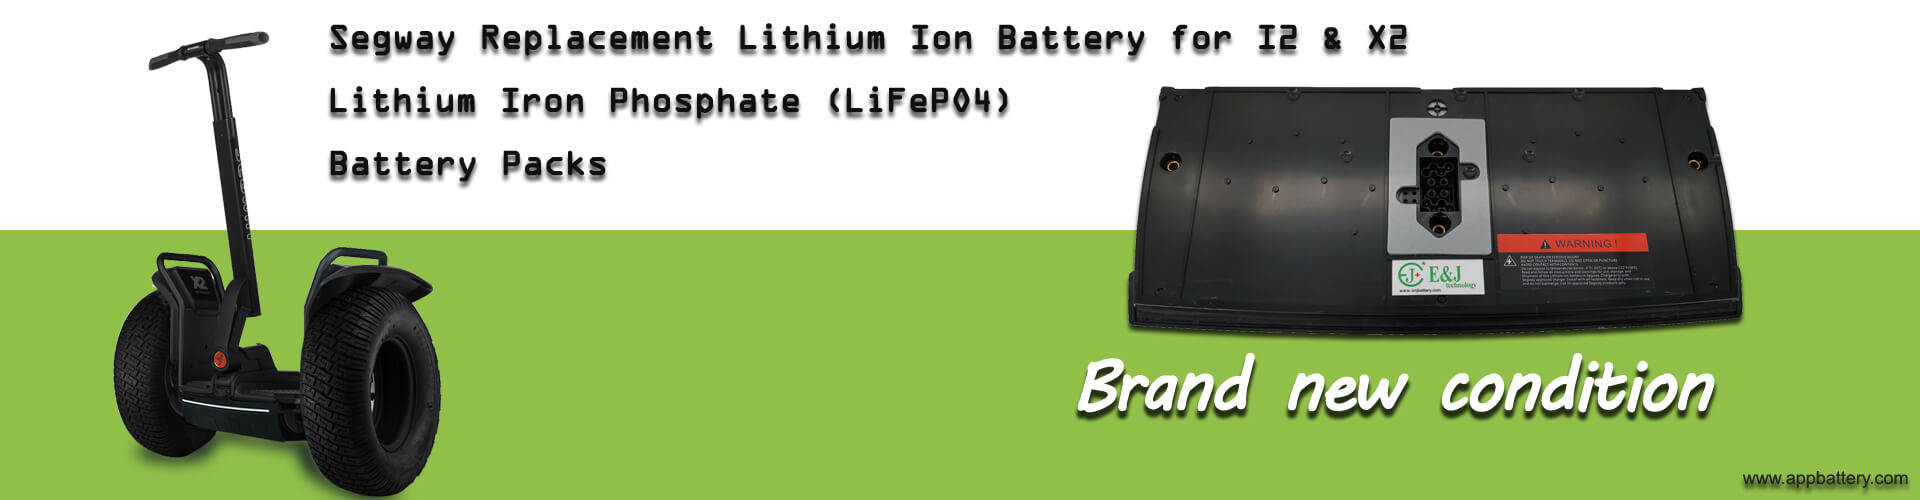 E&J 73.6V Lithium Iron Phosphate (LiFePO4) Segway replacement batteryfor Segway X2 I2 PS series